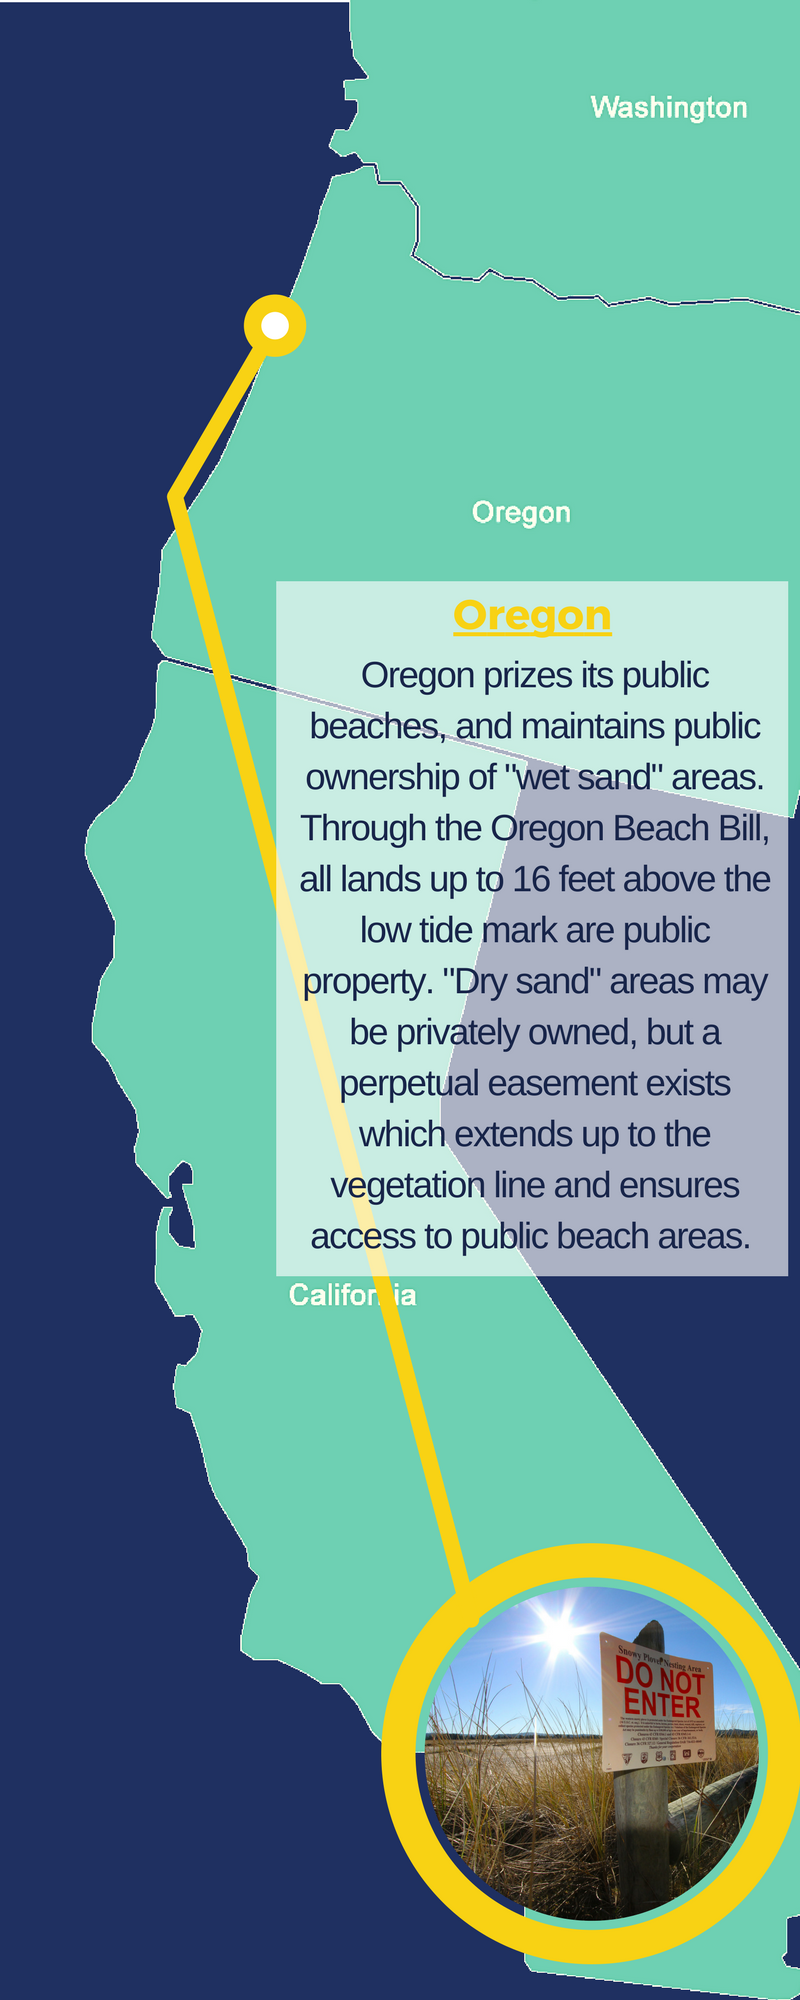 Oregon Has Public Beach Access Laws Which Are More Typical Of The U S In General Oregon Upholds The Public Trust Doctrine Which Is A Common Law Principle